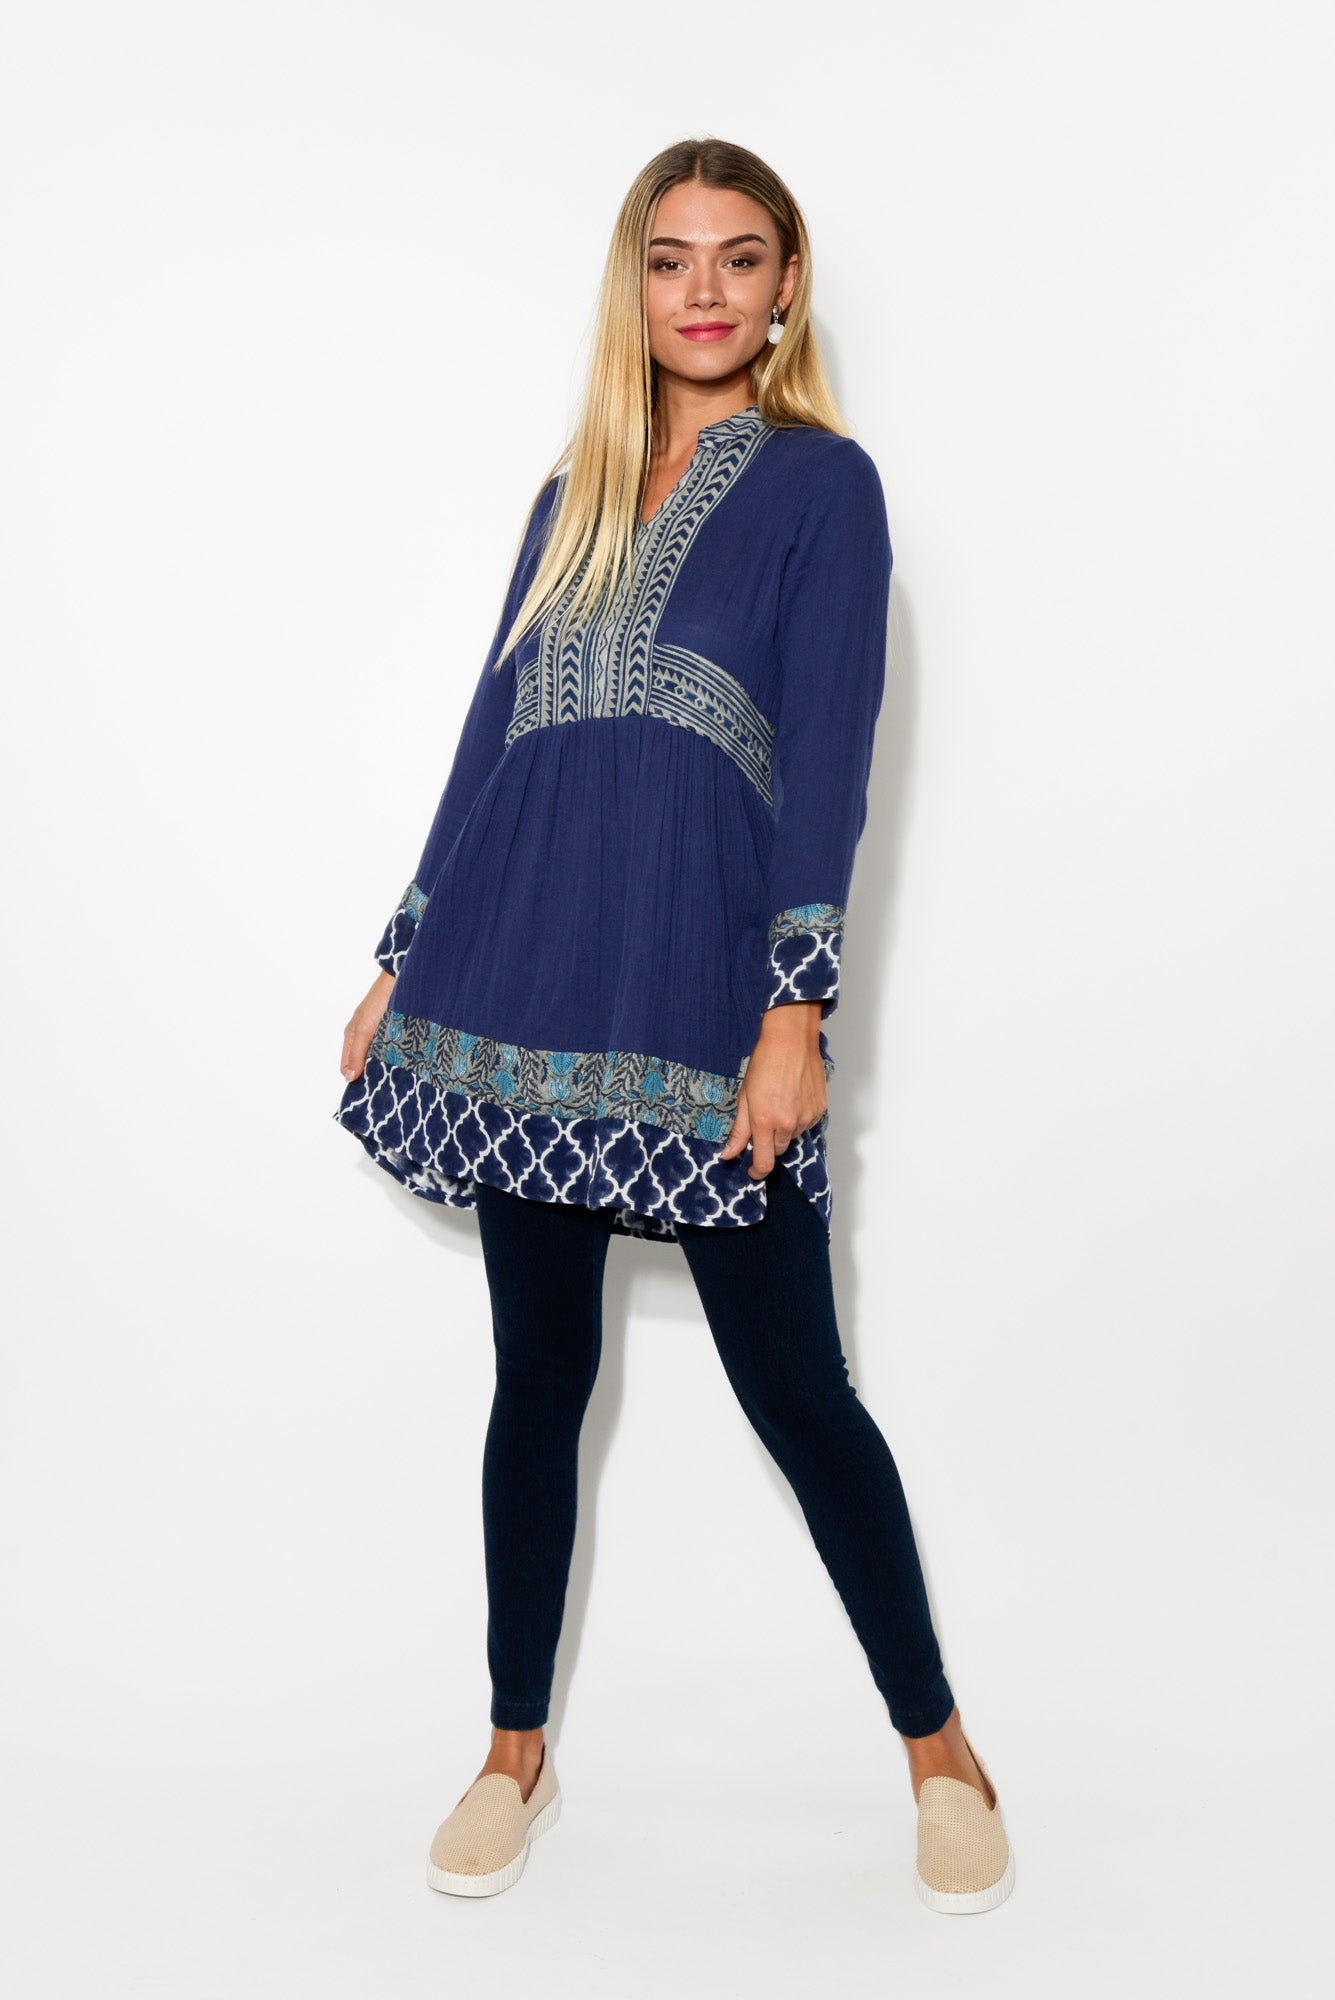 Sorronto Blue Sleeved Cotton Tunic - Blue Bungalow